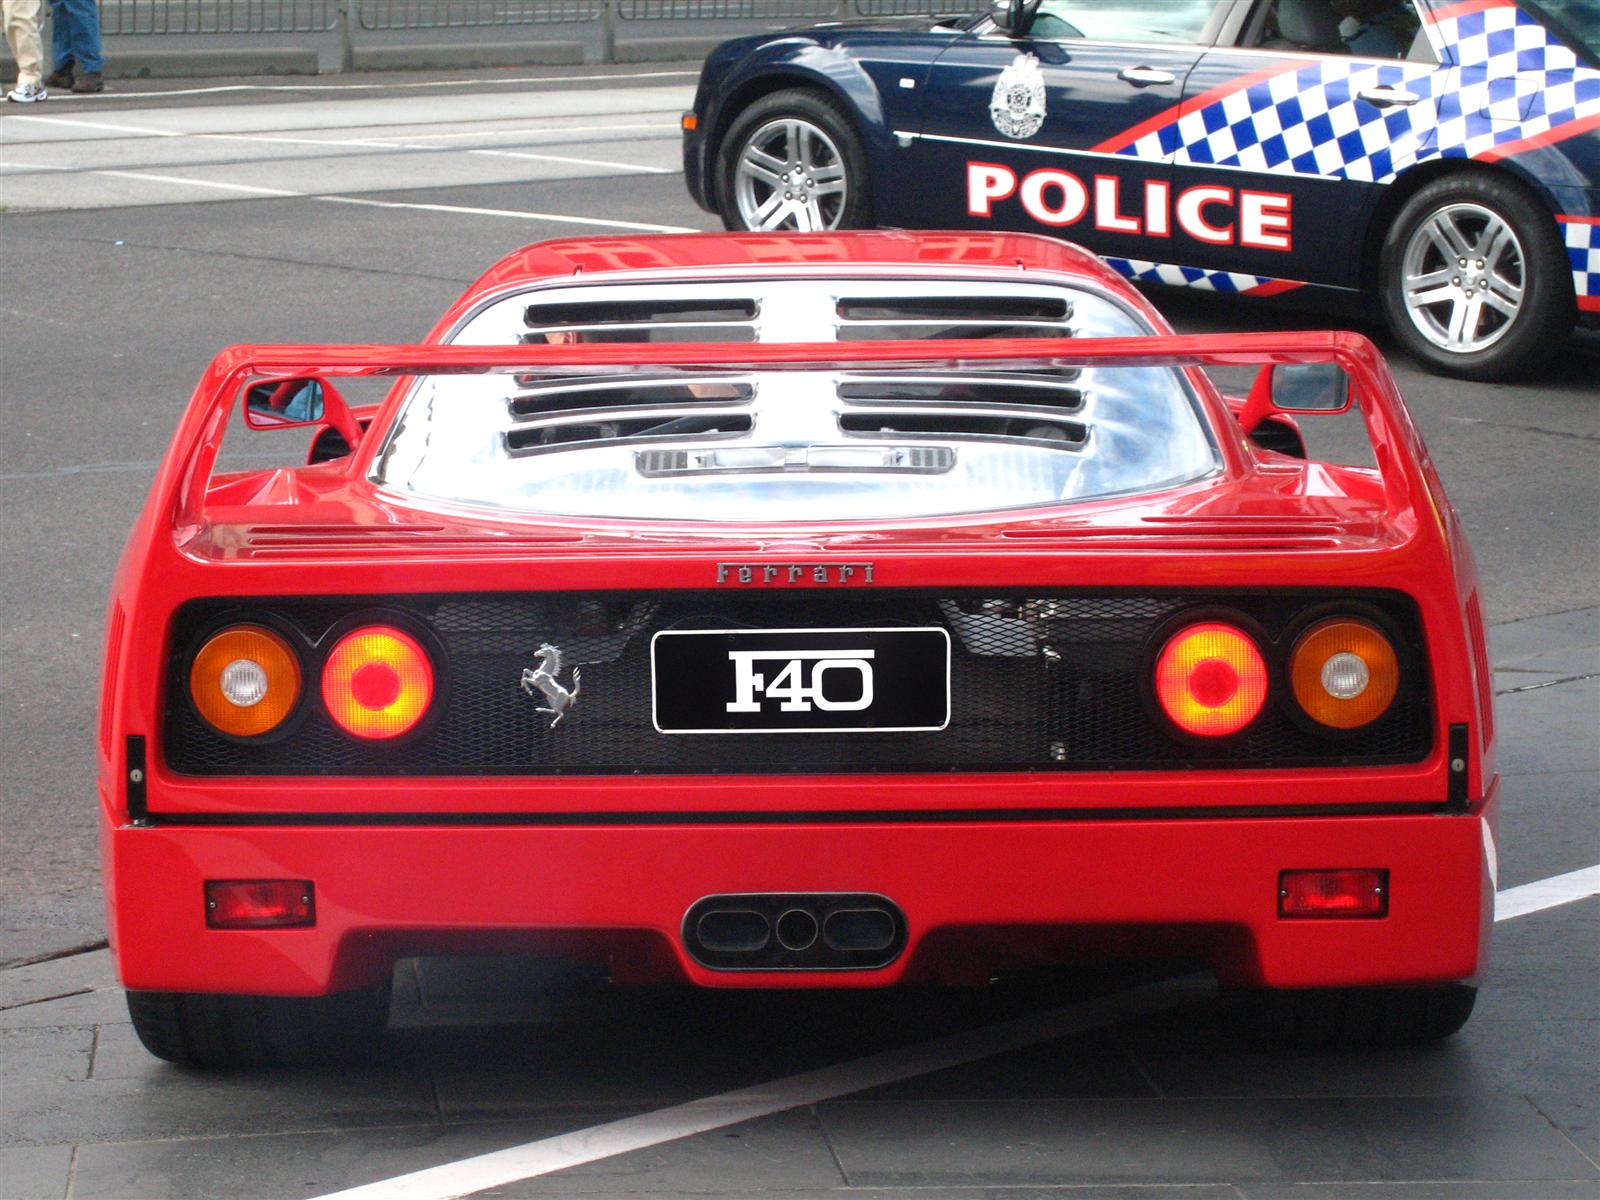 Ferrari f40 photos and videos of best cars ever simplyeighties ferrari f40 rear and police crown casino melbourne australia 3 march vanachro Choice Image